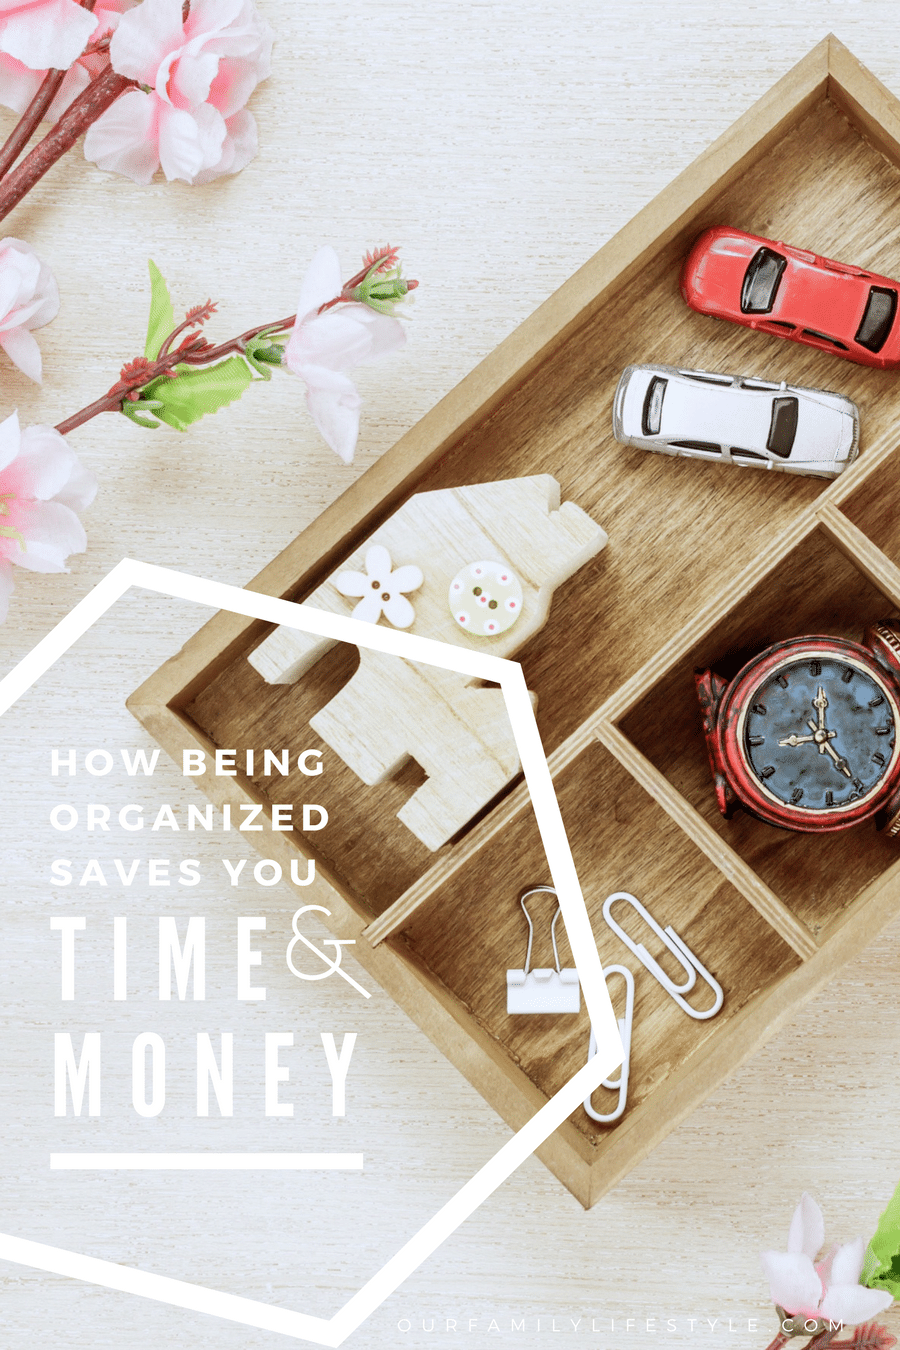 How Being Organized Saves You Time and Money